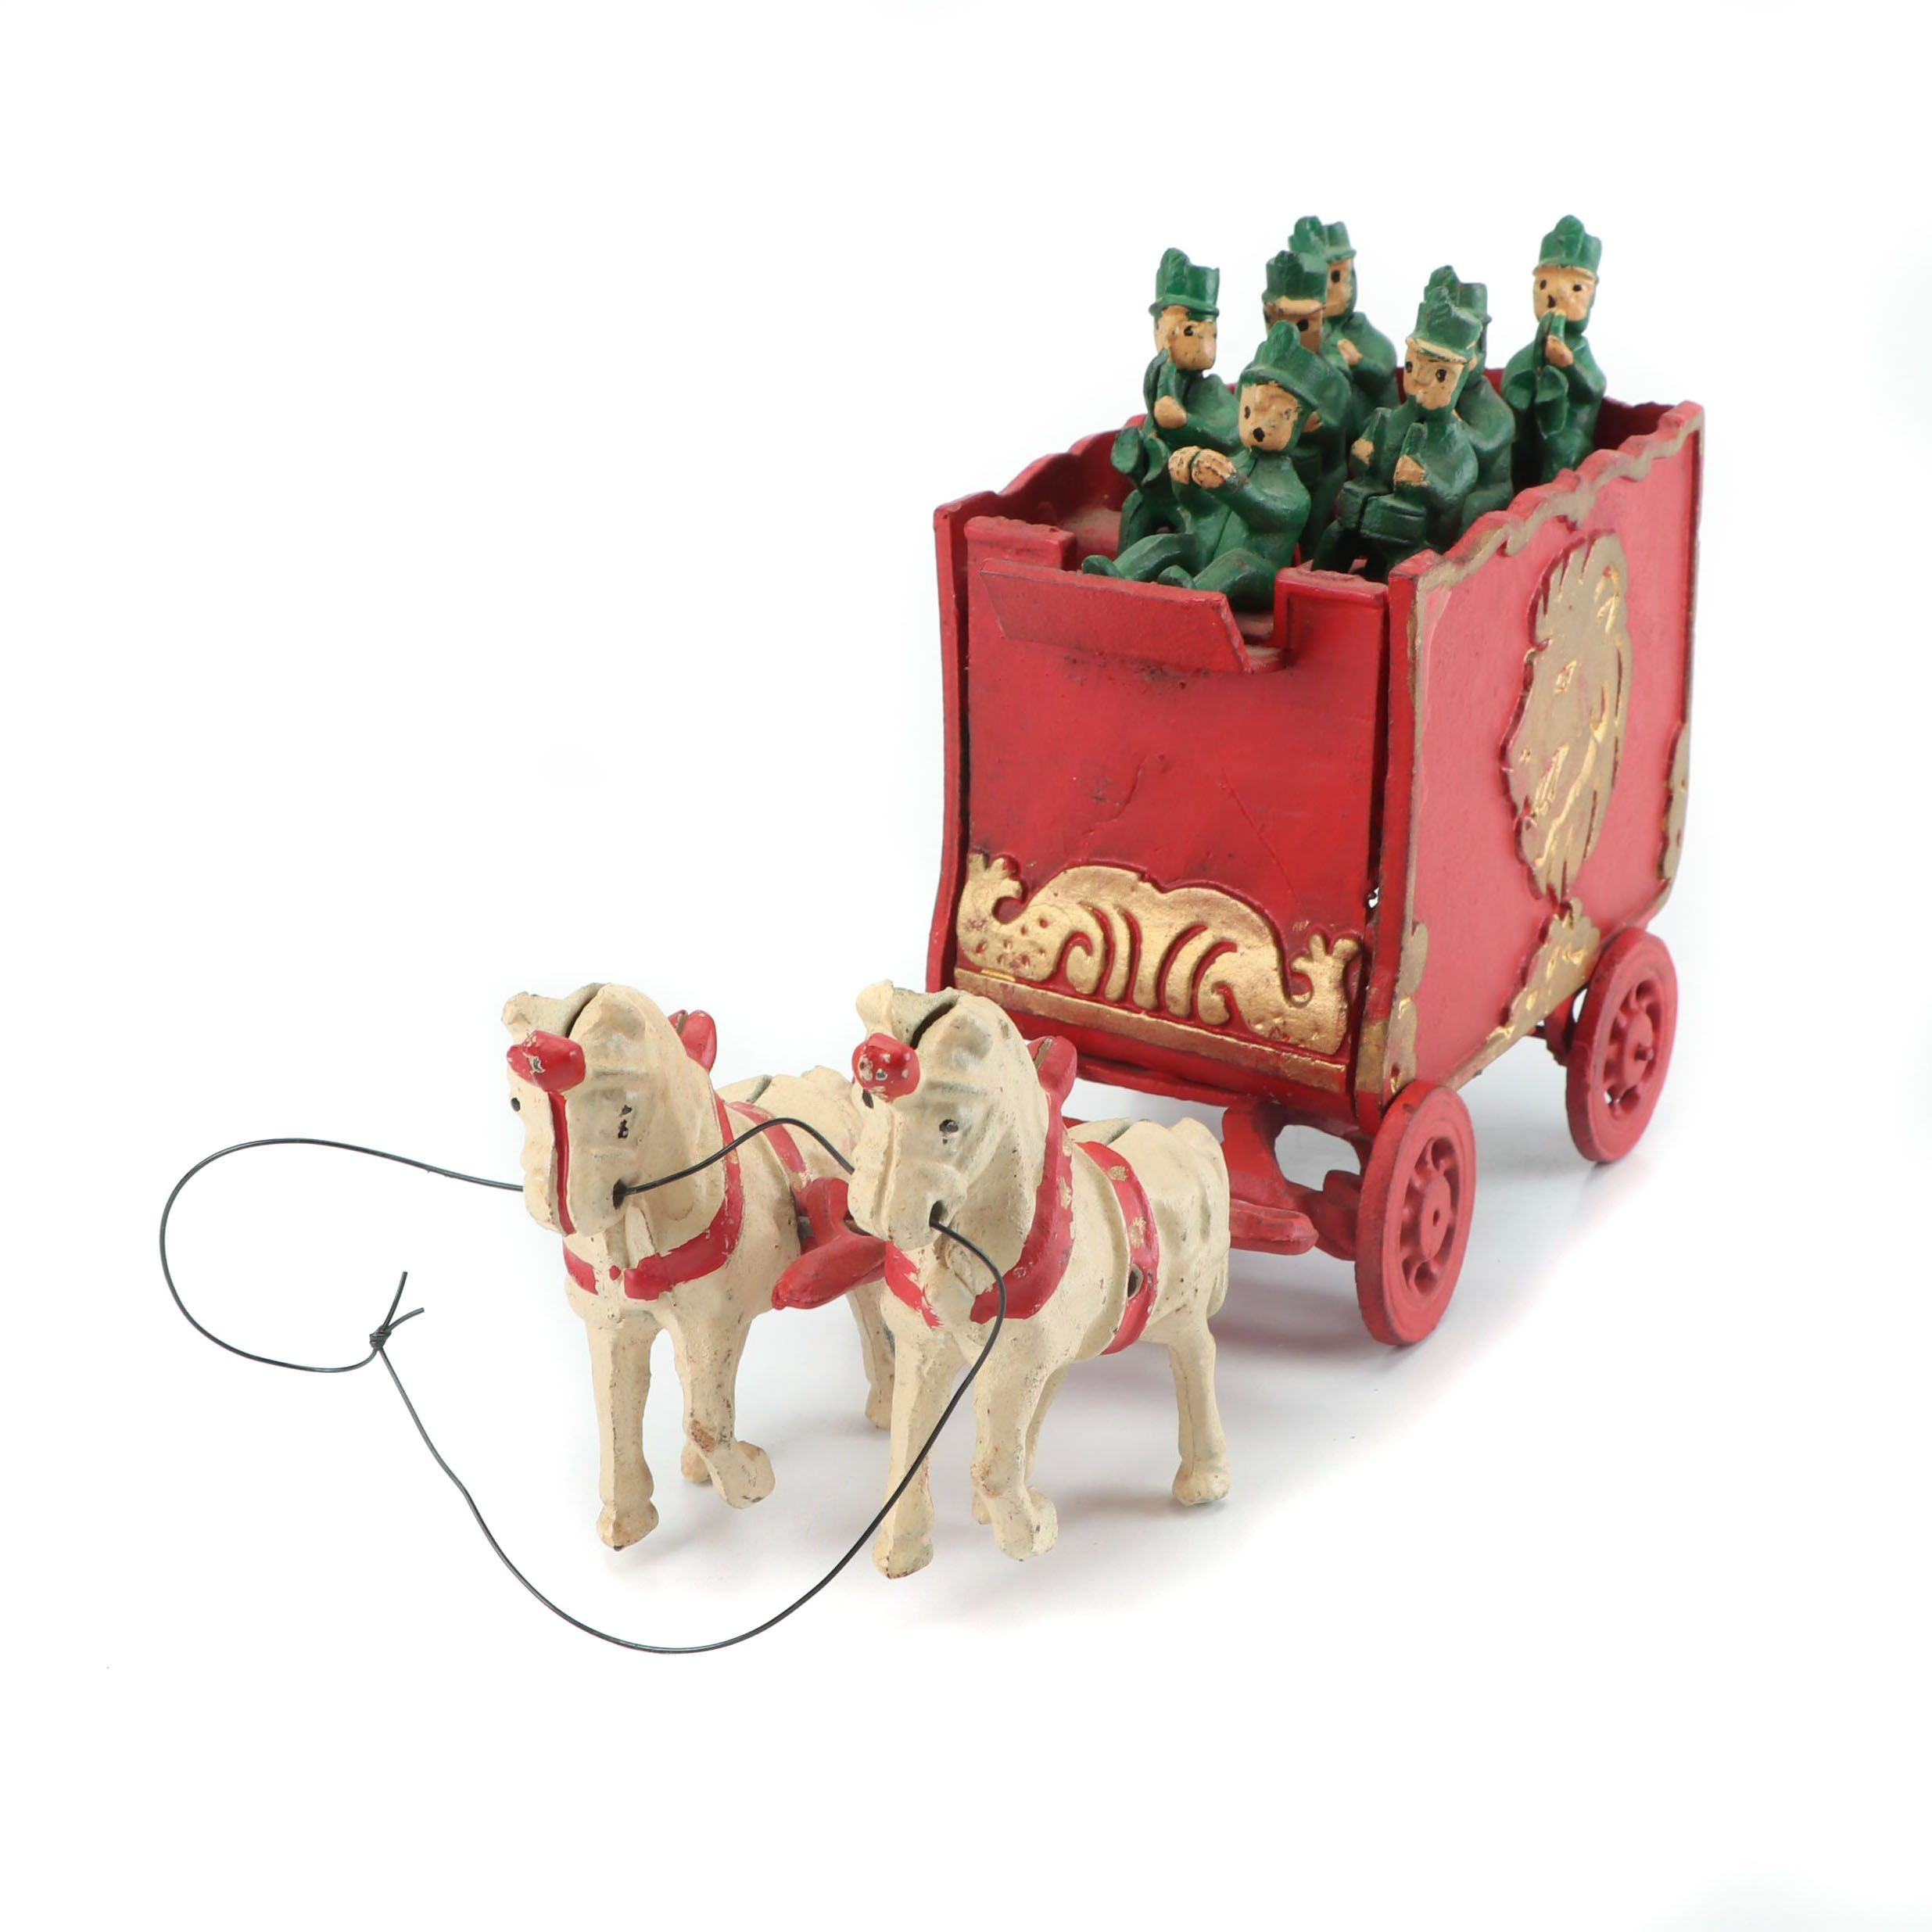 Cast Iron Circus Wagon with Horse and Musician Figurines, Mid-20th Century